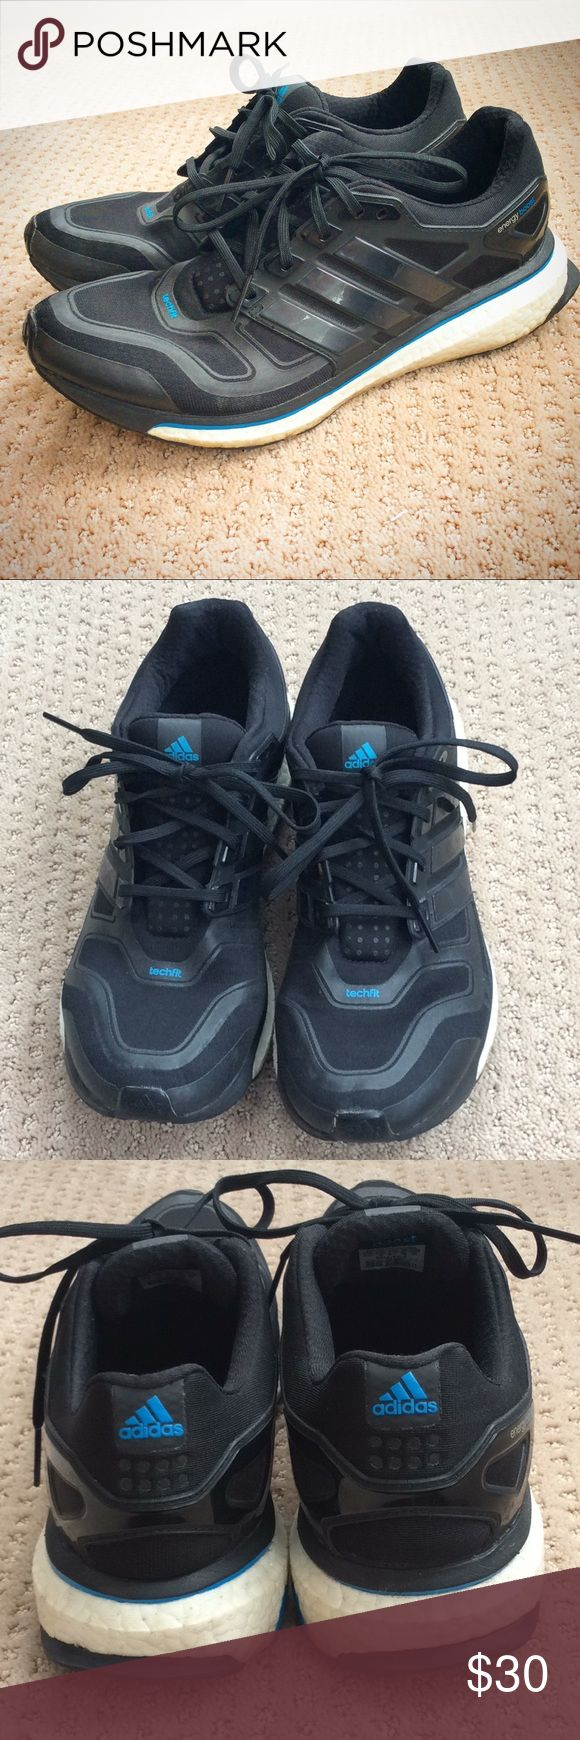 Adidas Energy Boost Size 10.5. These were worn about 15 times on turf football fields. They have a little bit of a worn feel by the bottom and where the letters are worn off on the insole, but they still have plenty of life left in them. They have zero odor inside. adidas Shoes Sneakers